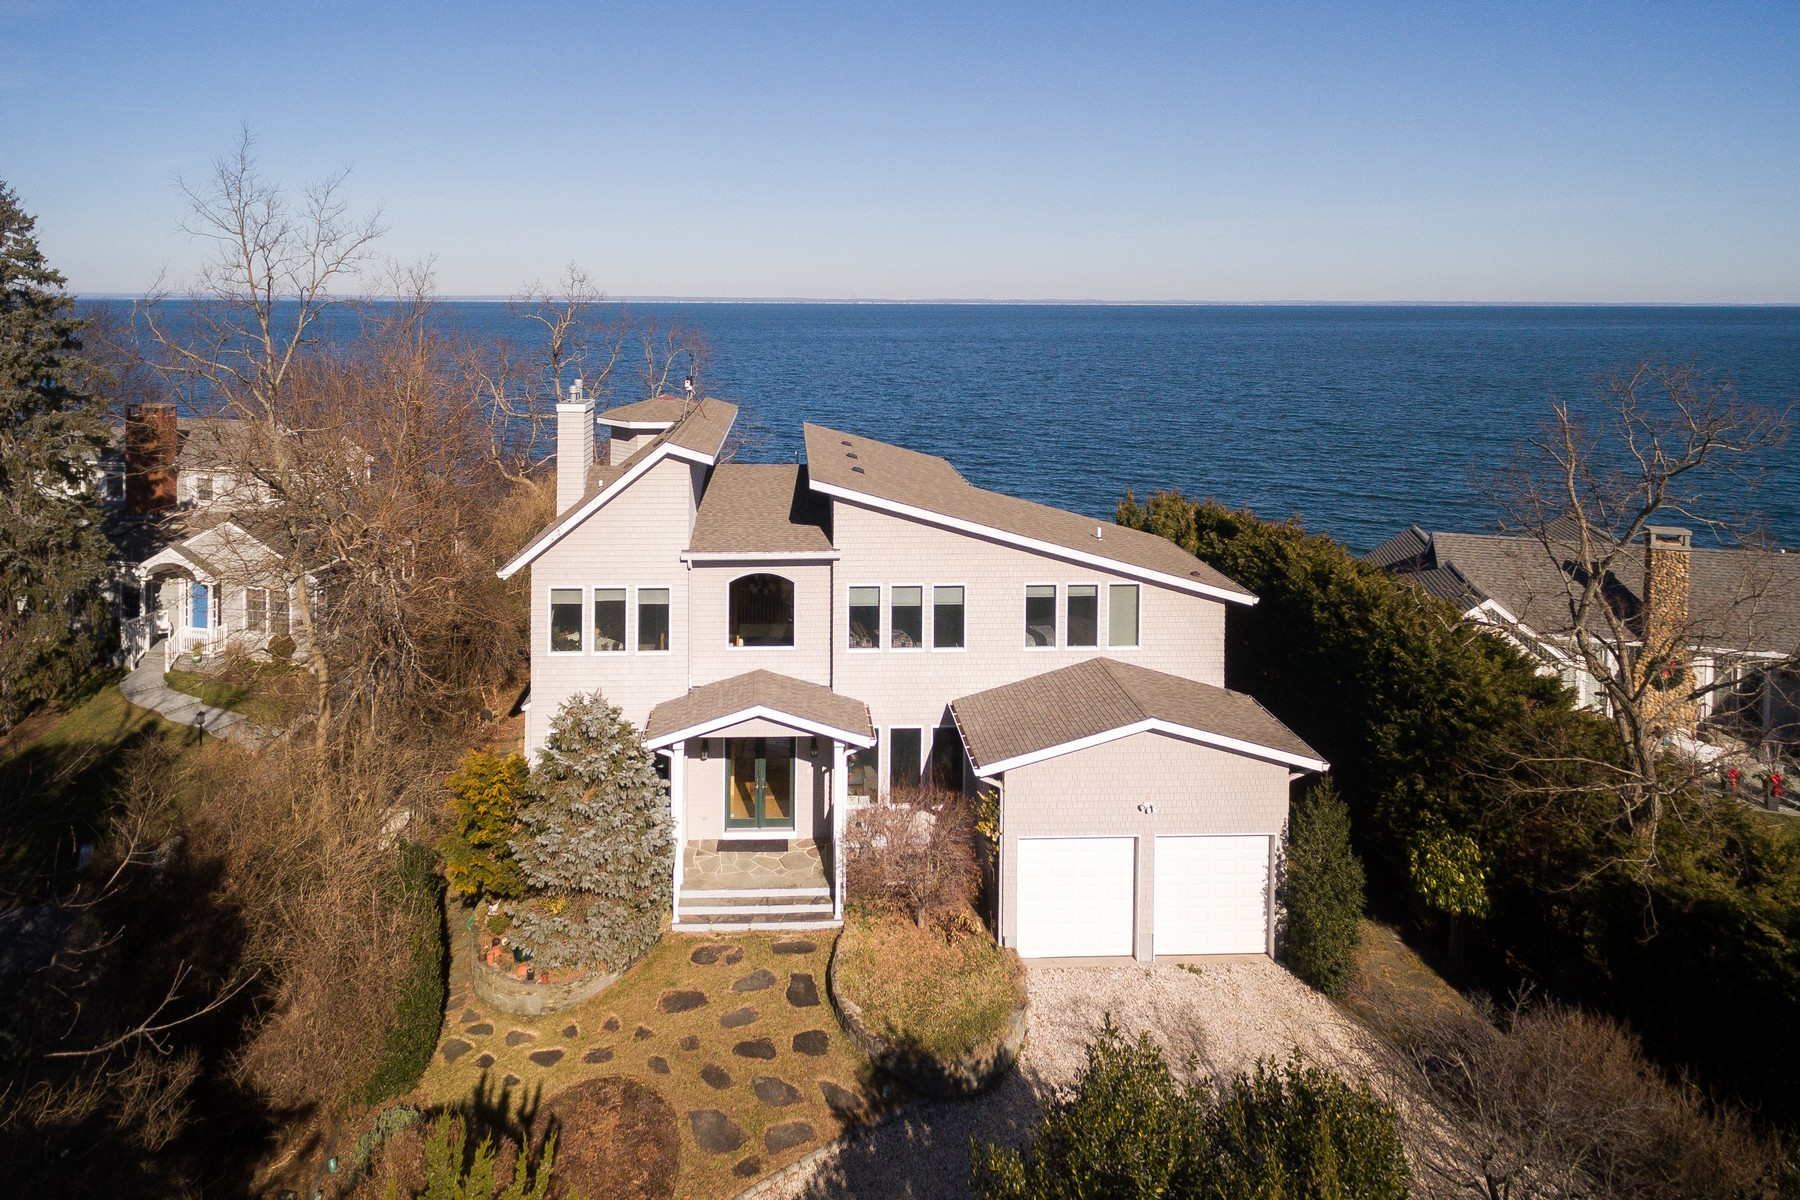 Single Family Homes for Sale at Southold 19625 Soundview Avenue Southold, New York 11971 United States